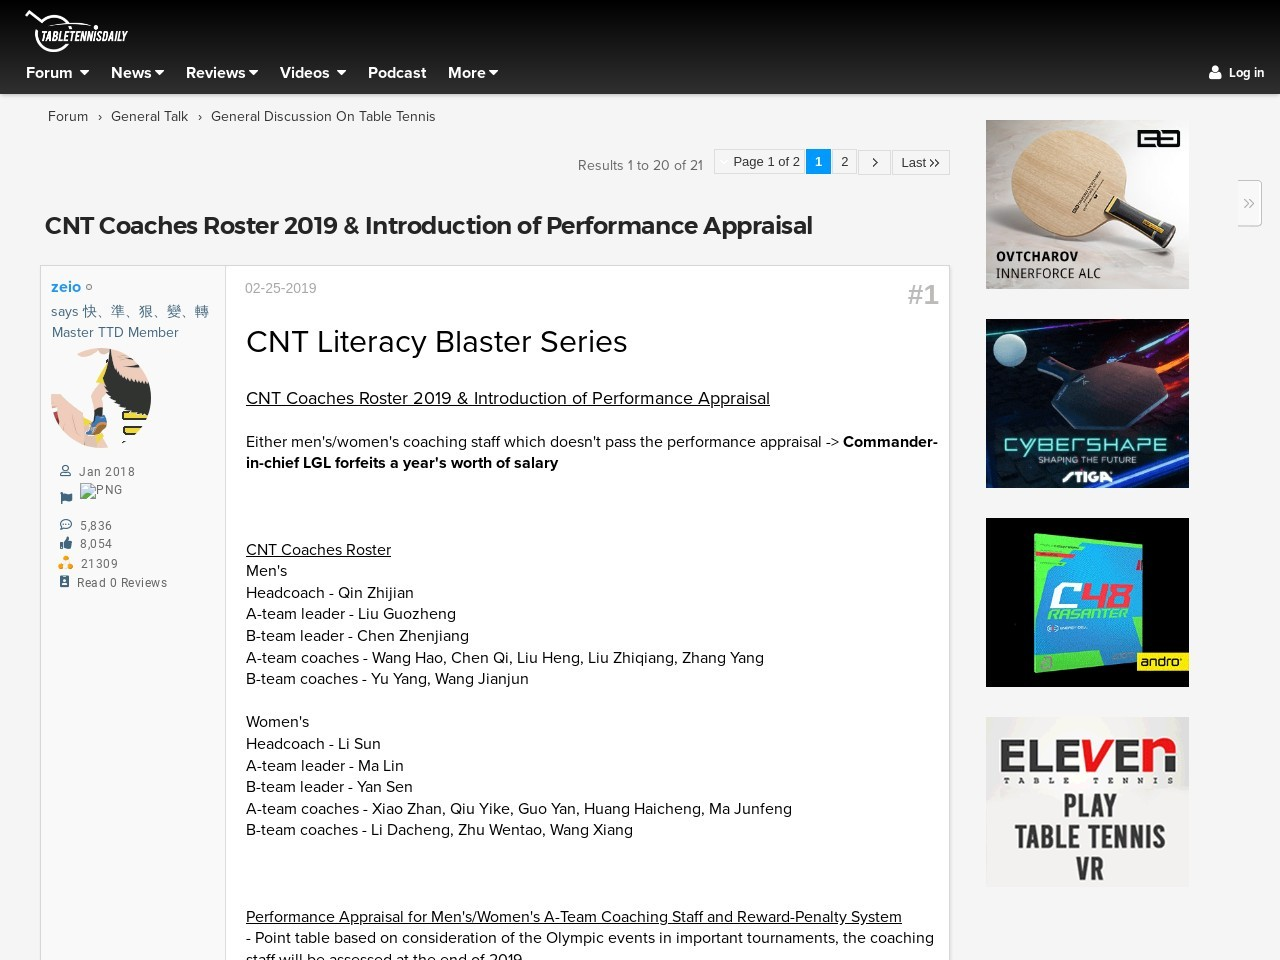 CNT Coaches Roster 2019 & Introduction of Performance Appraisal